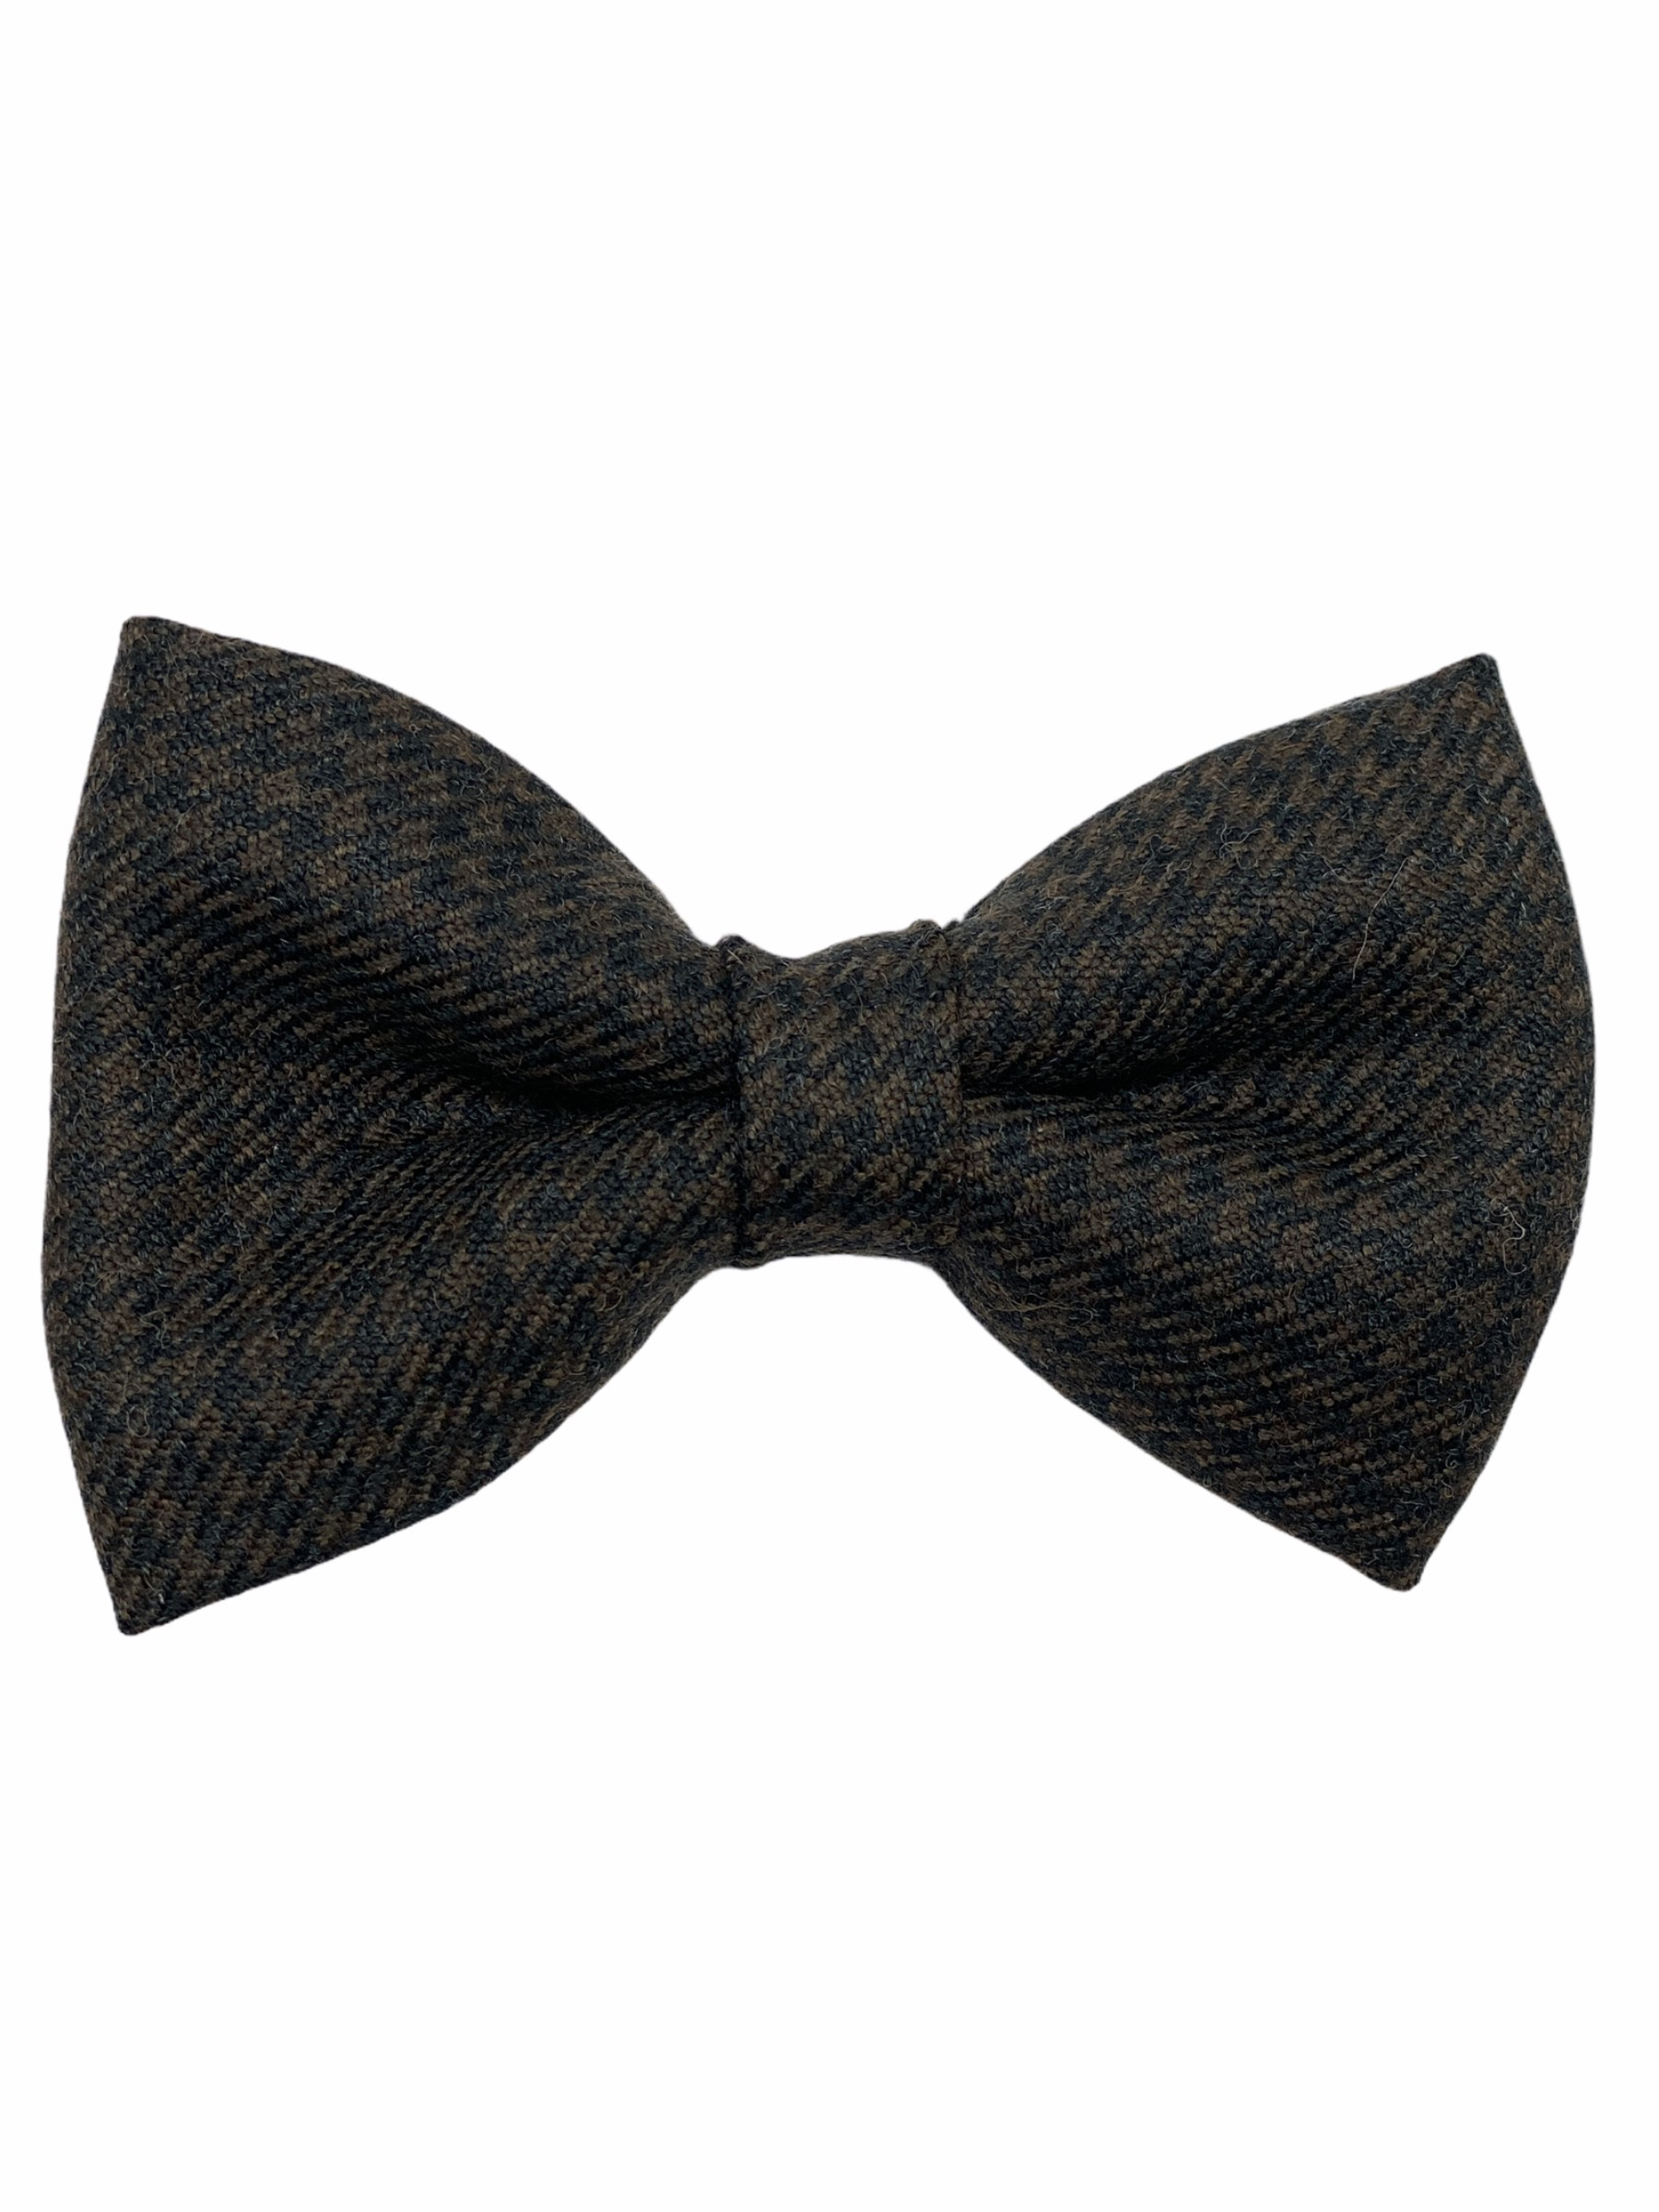 Houndstooth Brown Wool Bow Tie